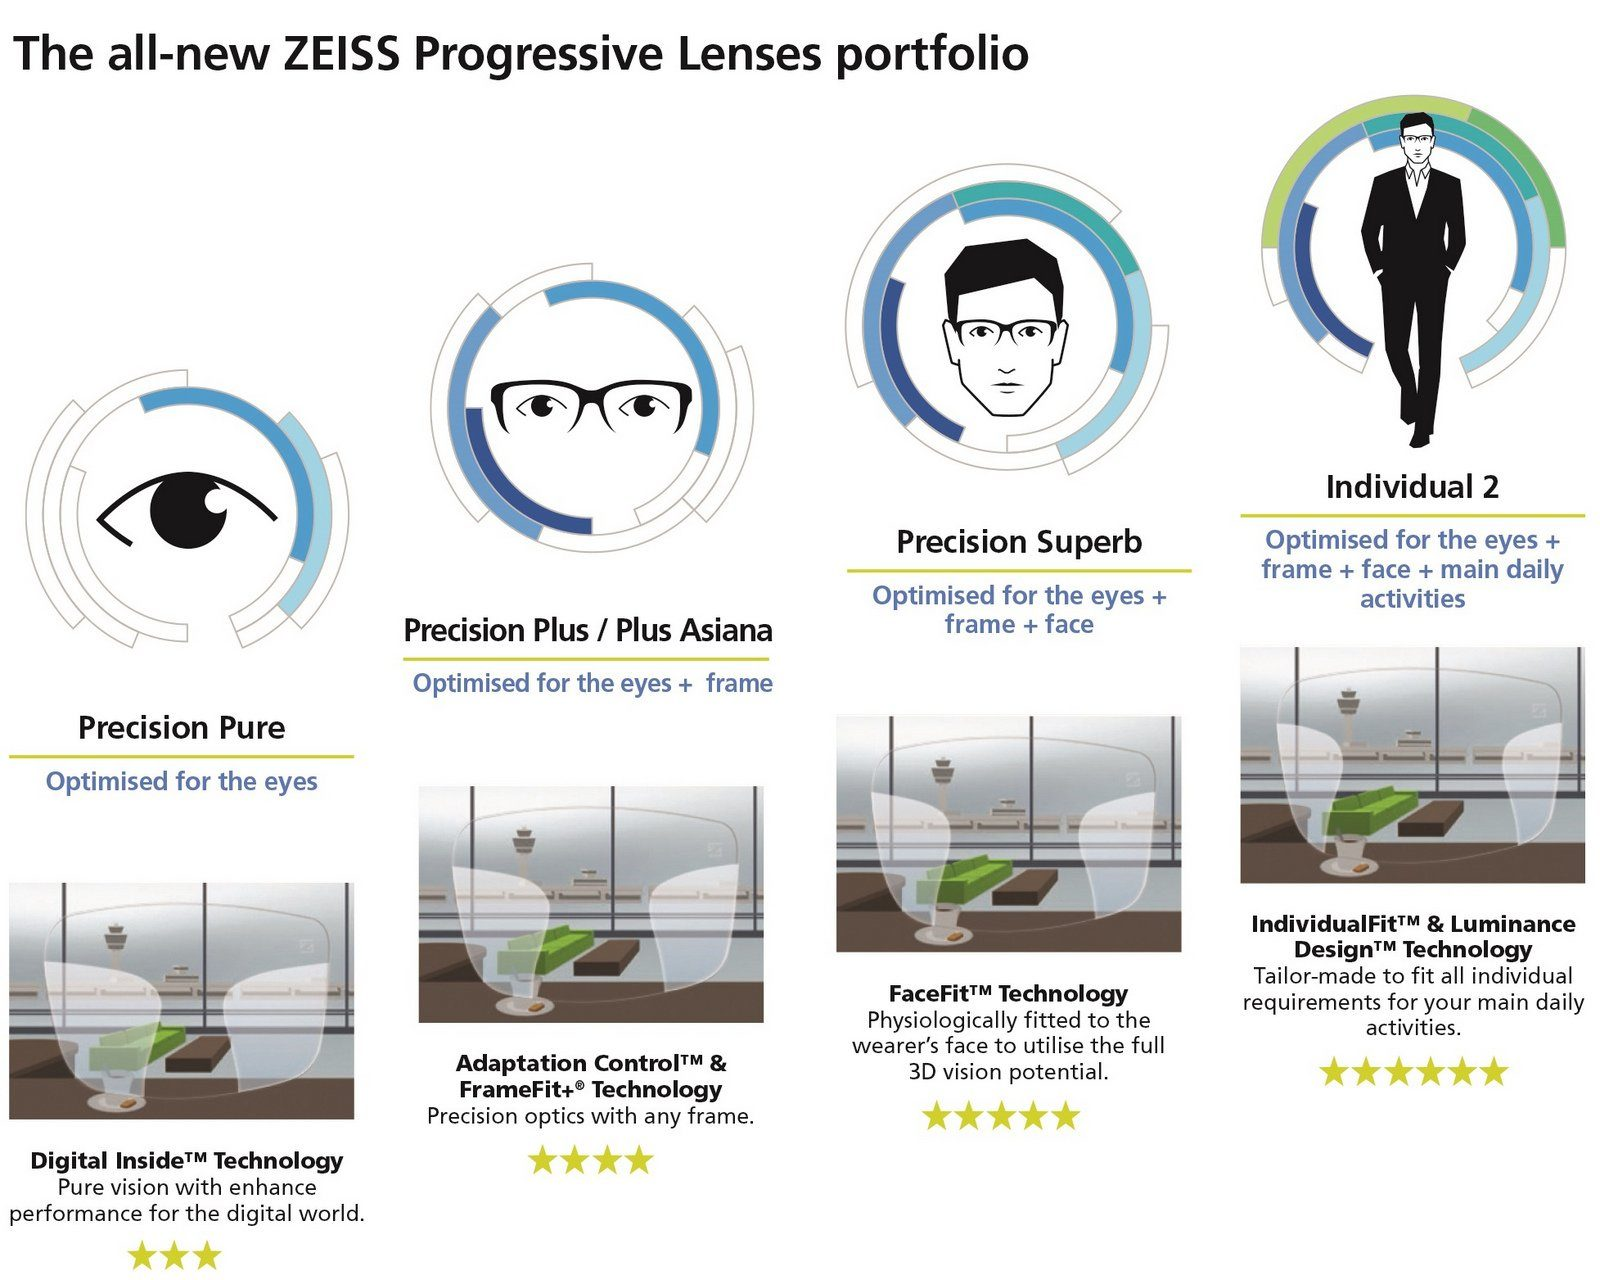 zeiss precision lens portfolio evershineoptical